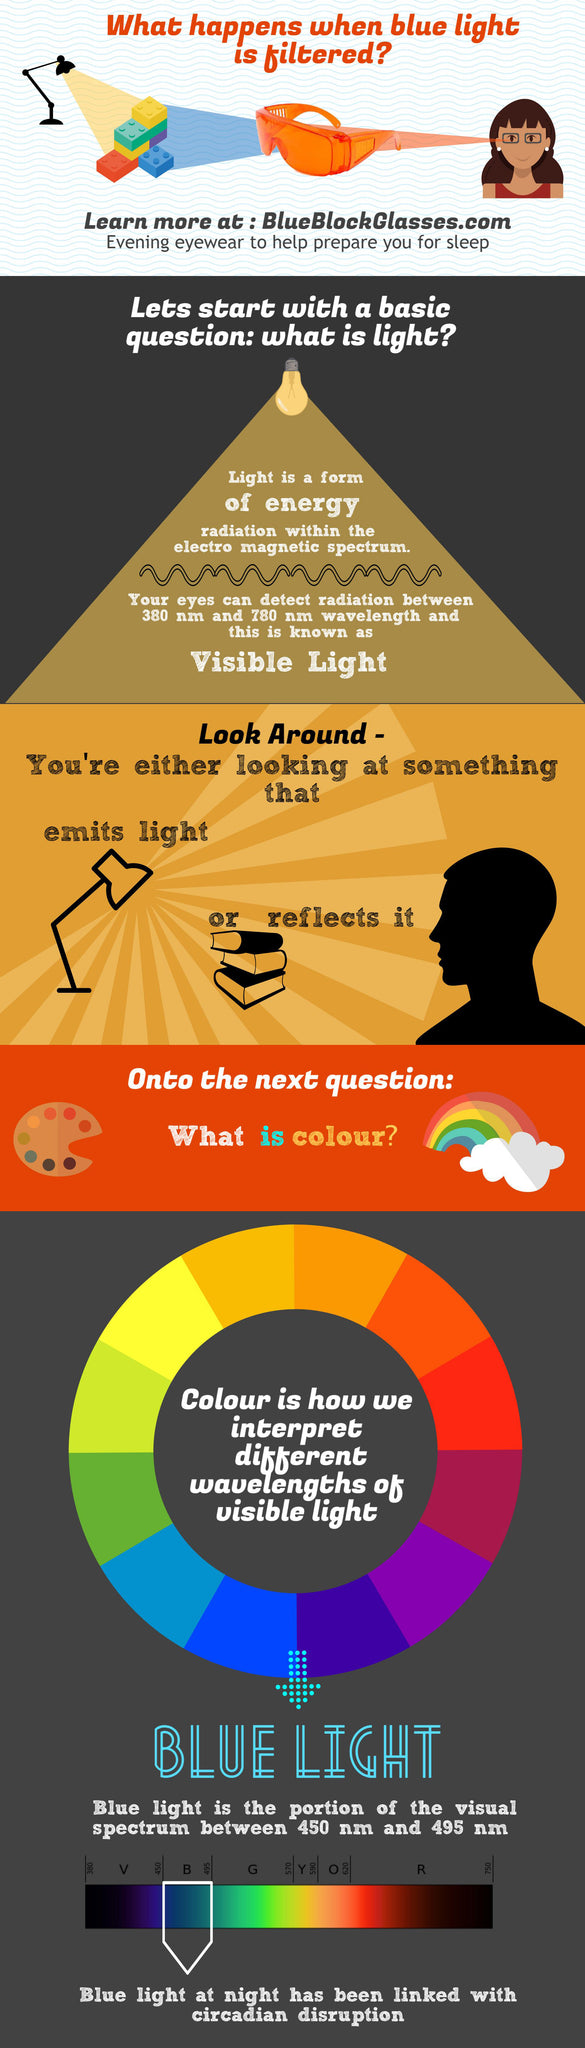 What happens when blue light is filtered? [infographic]